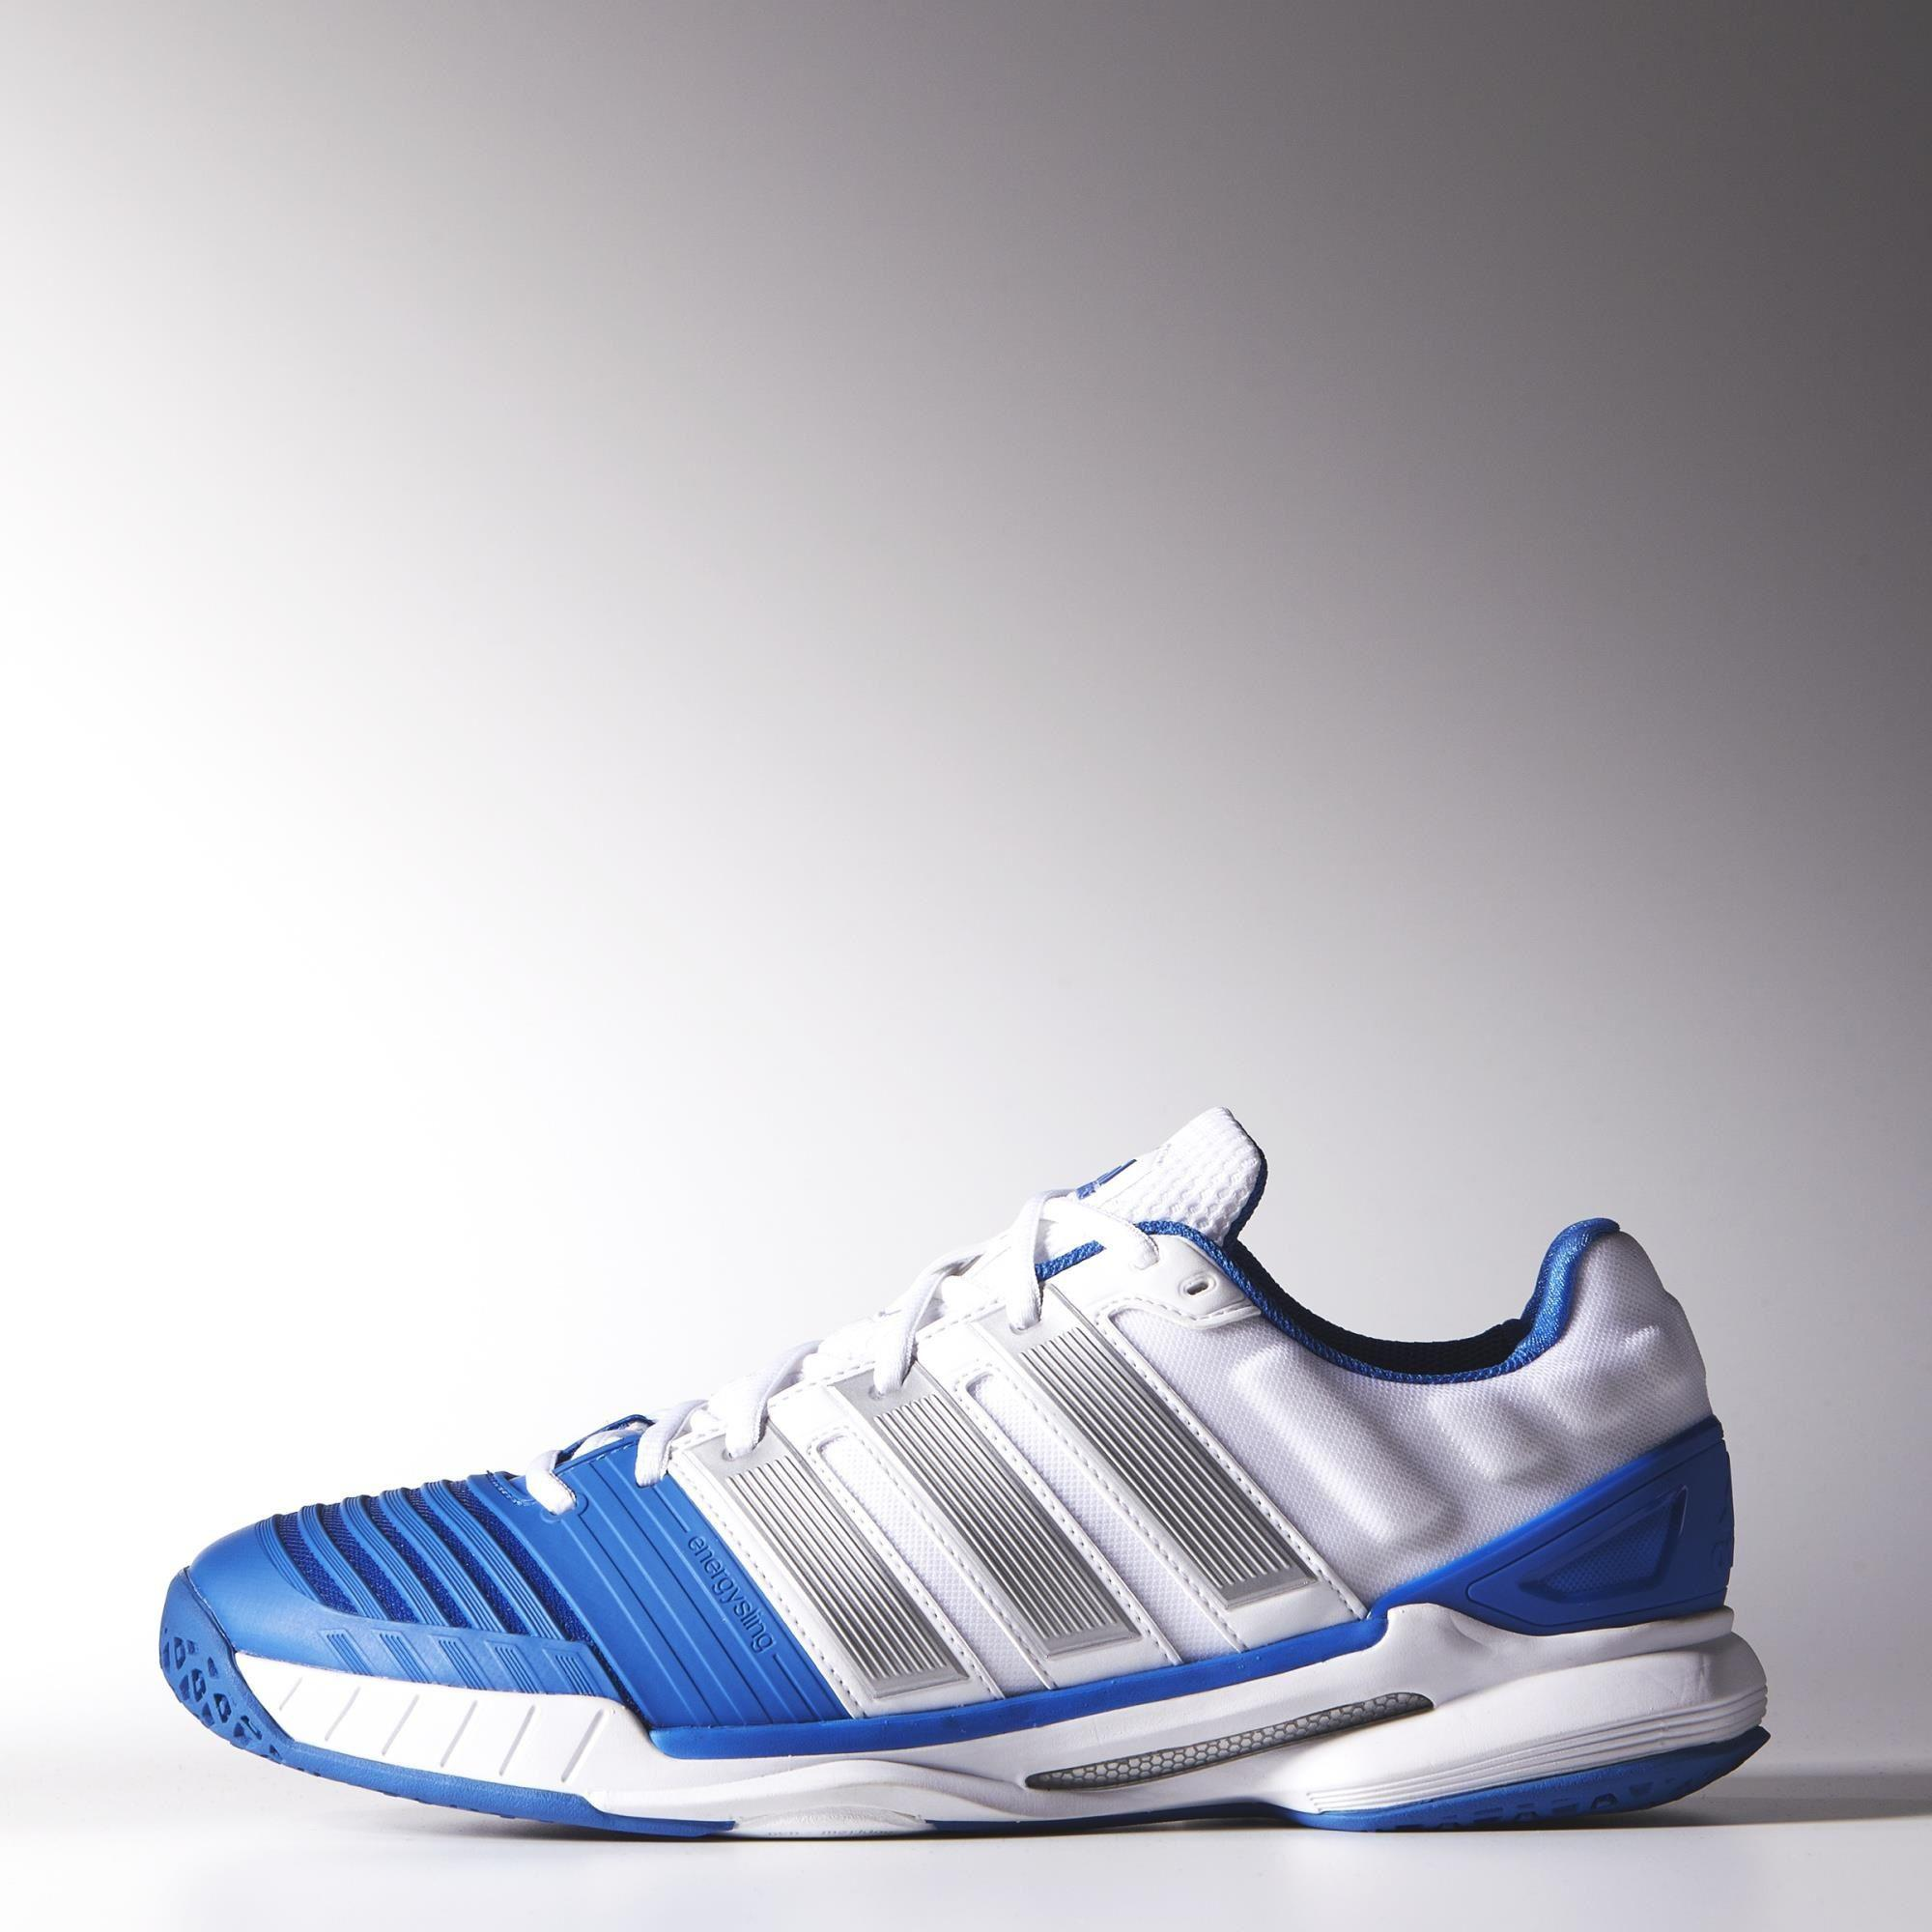 Adidas Mens adiPower Stabil 11 Indoor Shoes - White/Blue